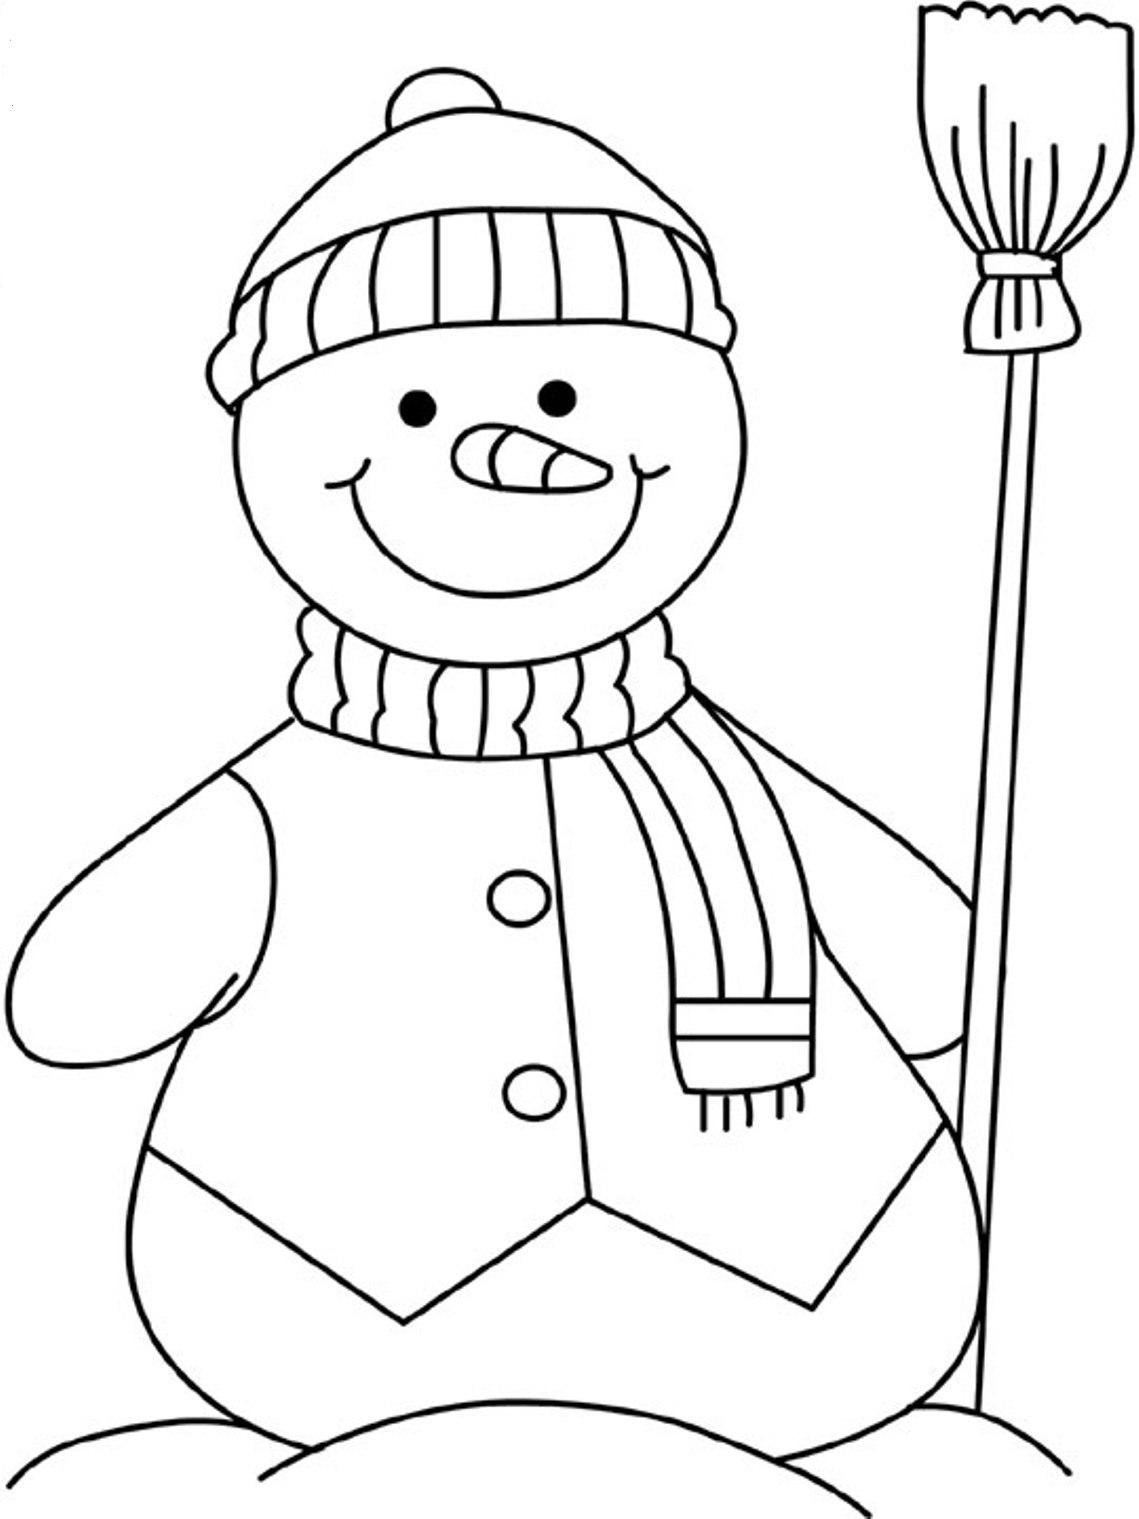 snowman coloring snowman coloring pages to download and print for free coloring snowman 1 1